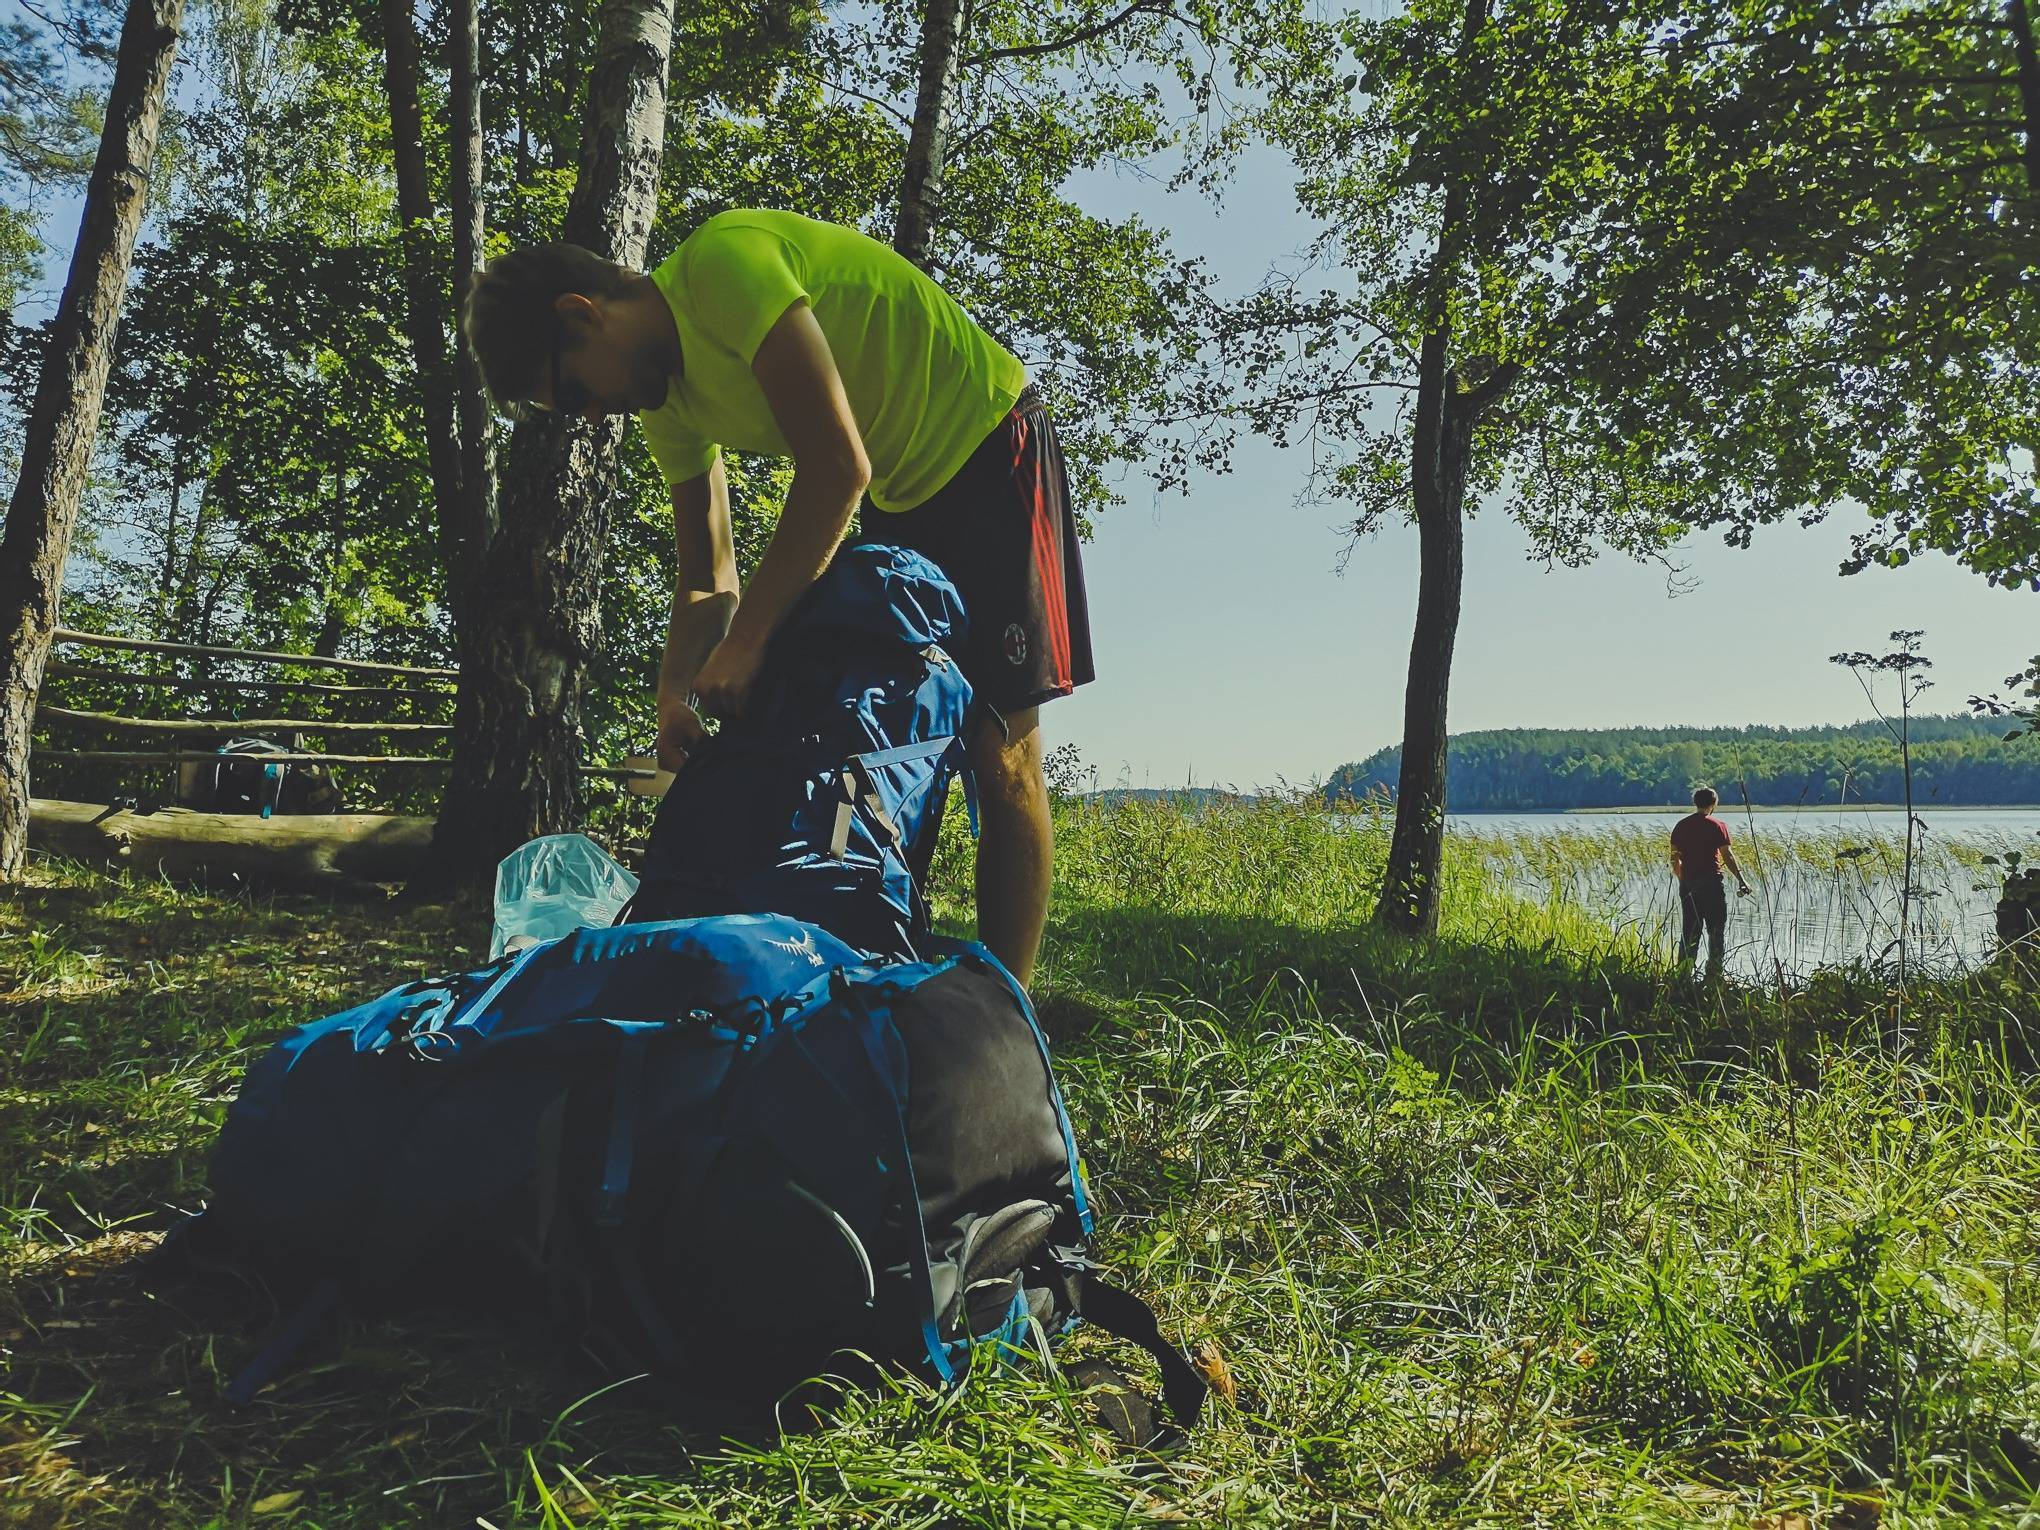 Packing trekking backpack in Labanoras Regional Park, Lithuania. Photo Alis Monte [CC BY-SA 4.0], via Connecting the Dots